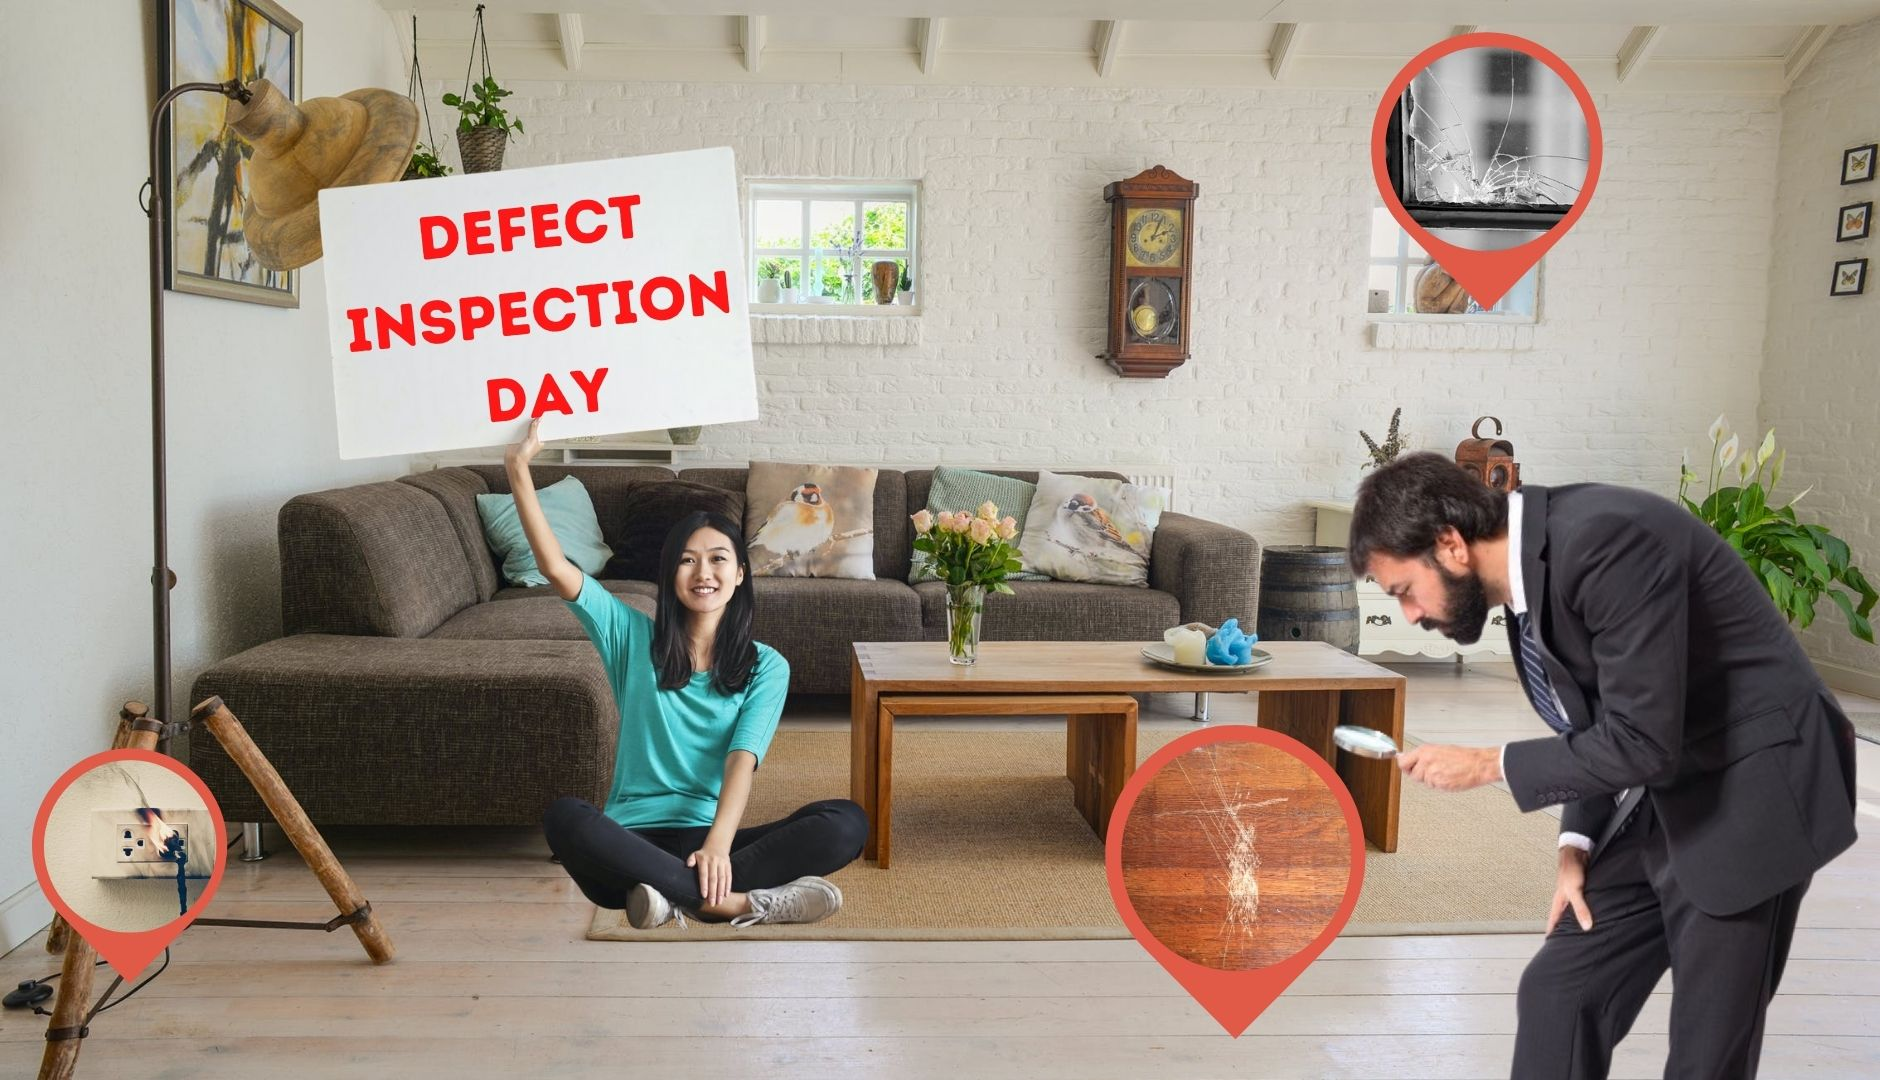 It is Inspection Day and purchaser needs to look carefully for all defects to make a good Property Defect Management!!